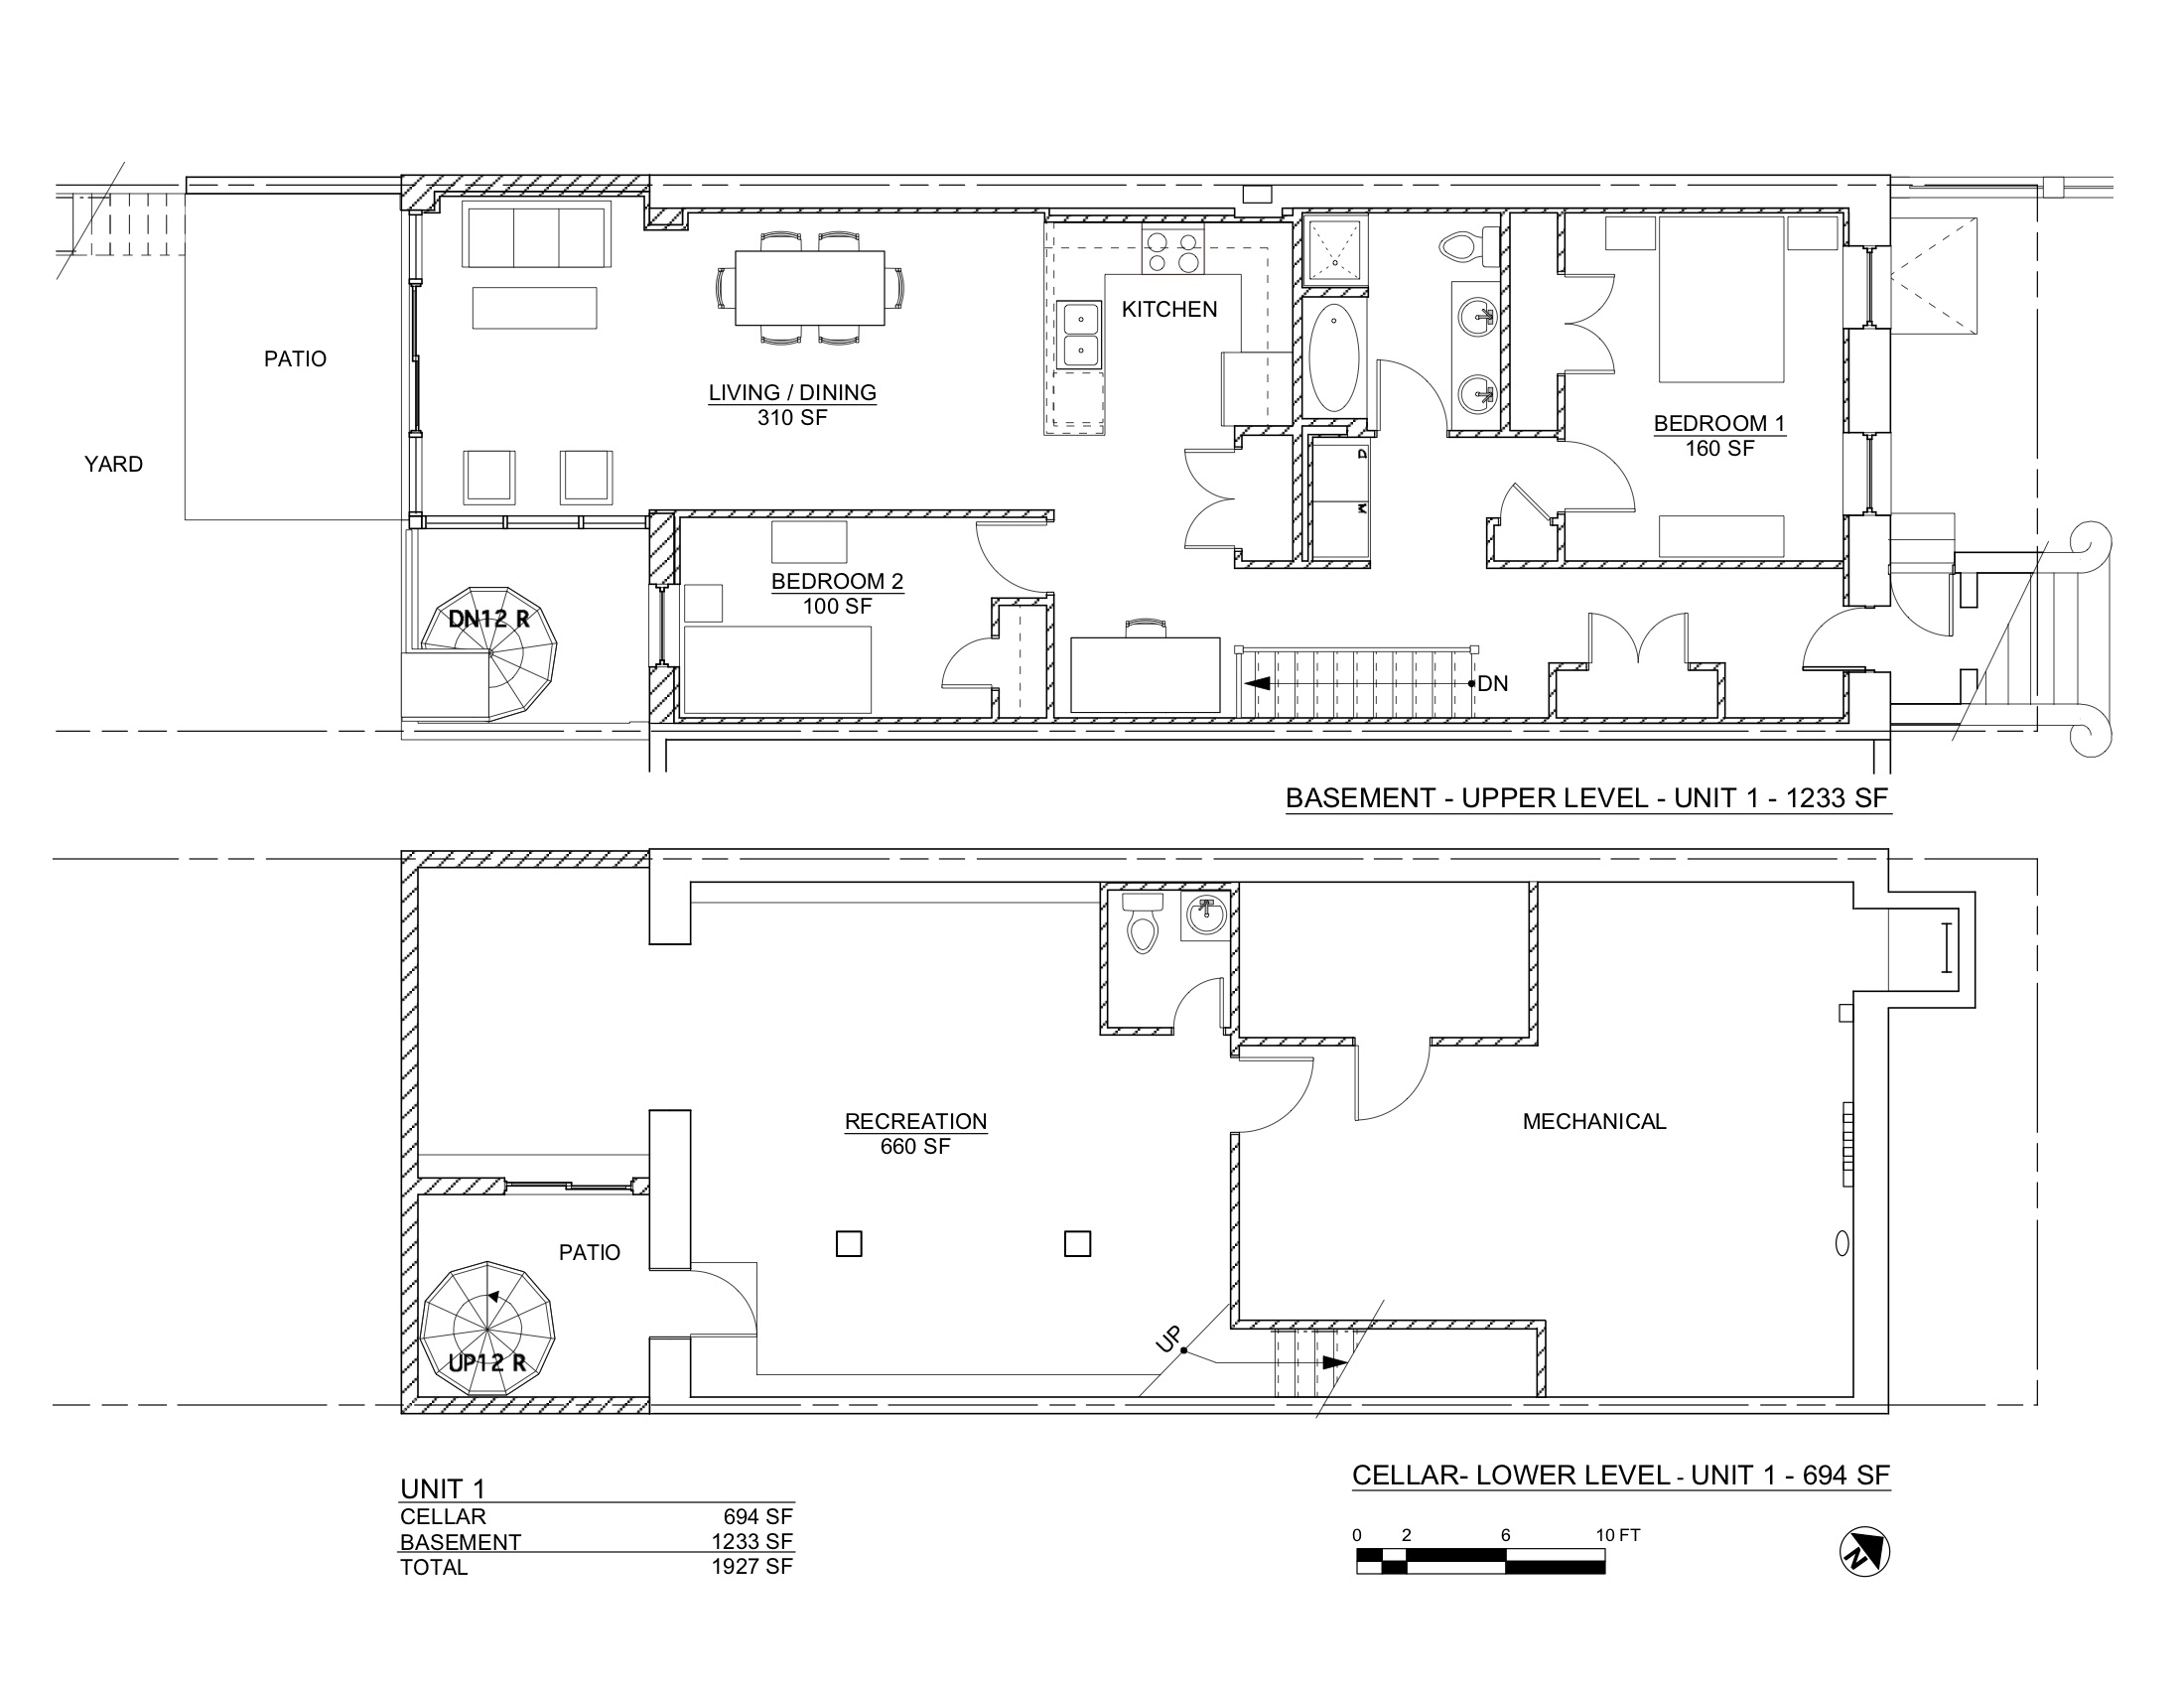 PACIFIC STREET PLANS CELLAR & BASEMENT F